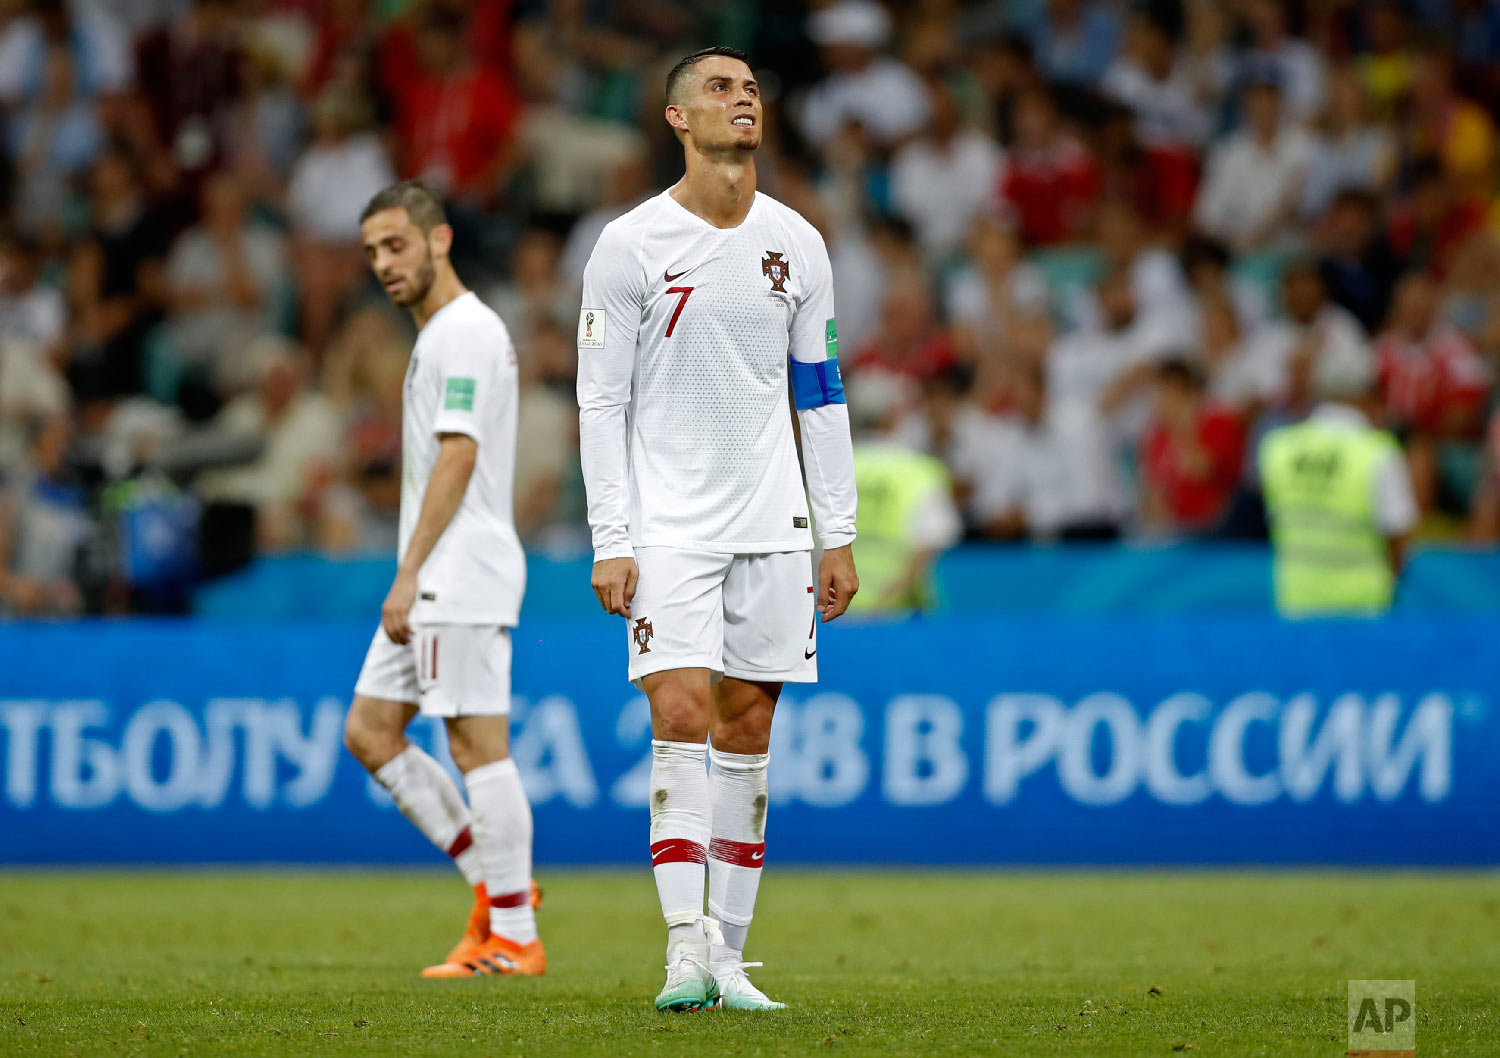 Portugal's Cristiano Ronaldo reacts disappointed during the round of 16 match between Uruguay and Portugal at the 2018 soccer World Cup at the Fisht Stadium in Sochi, Russia, Saturday, June 30, 2018. (AP Photo/Francisco Seco)